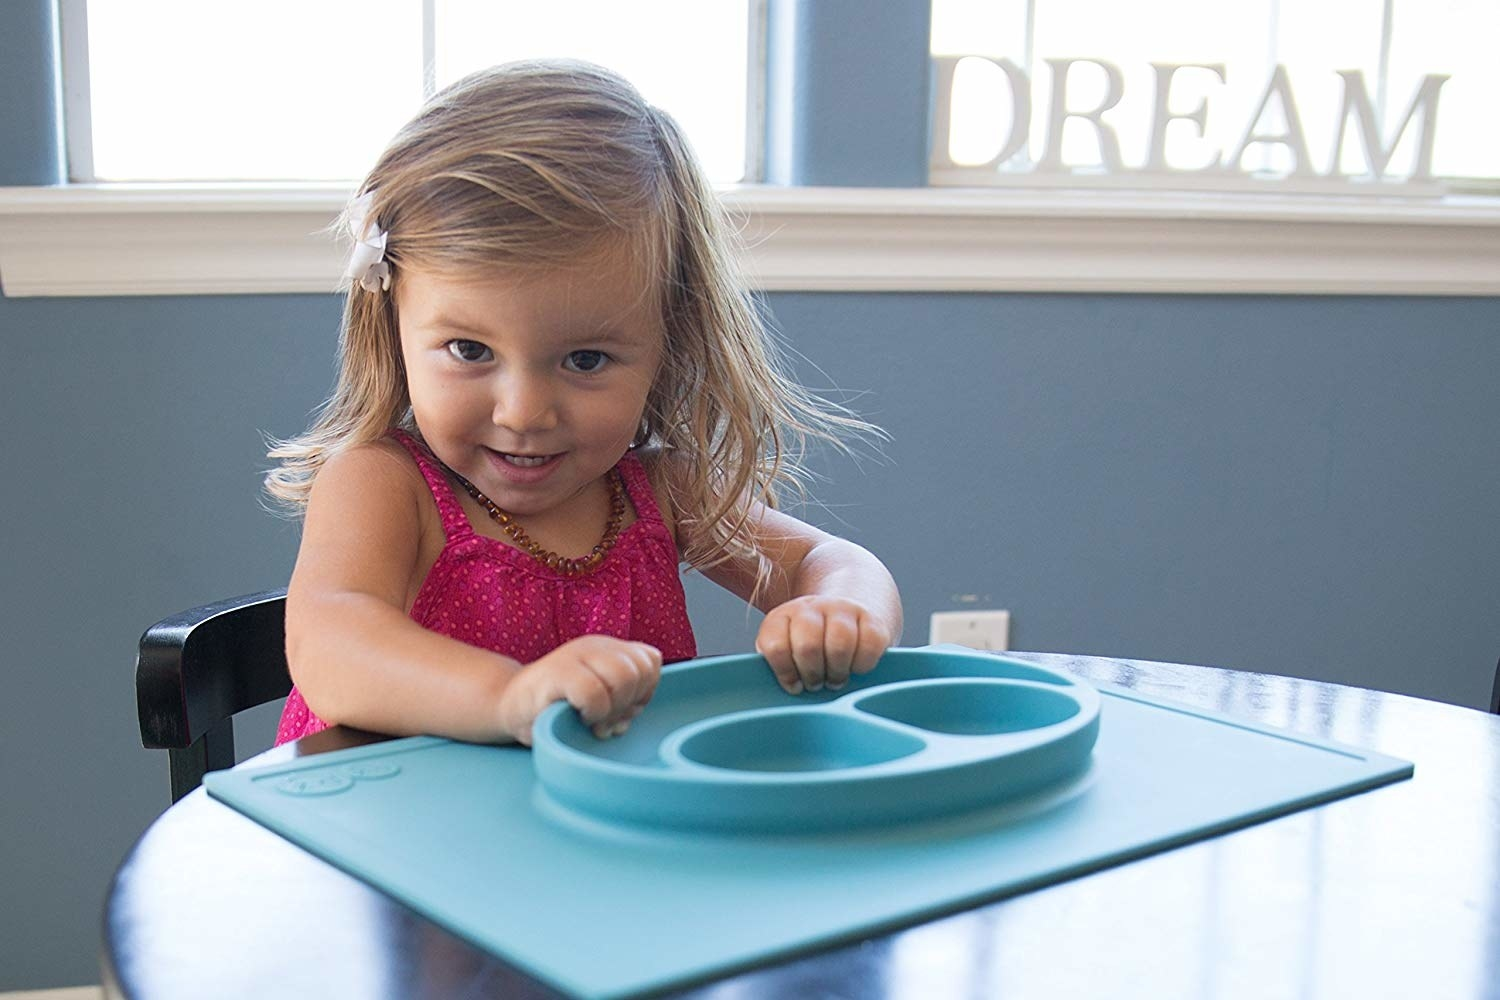 toddler sitting at table with their hands on the dinner plate/place mat that's suctioned to the table